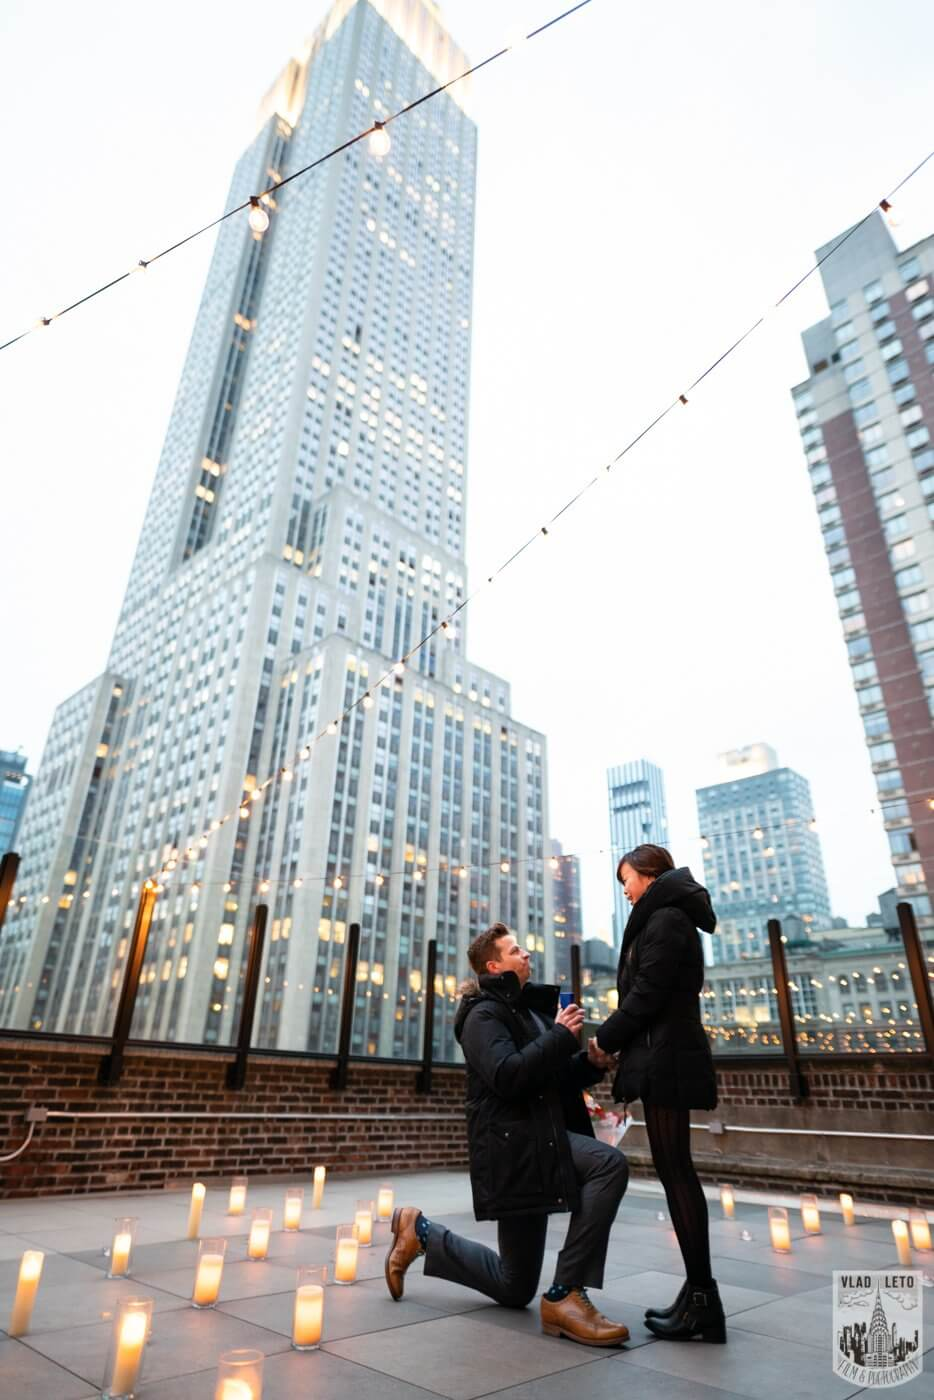 Photo Wedding proposal on a private rooftop with Empire State building view.   VladLeto